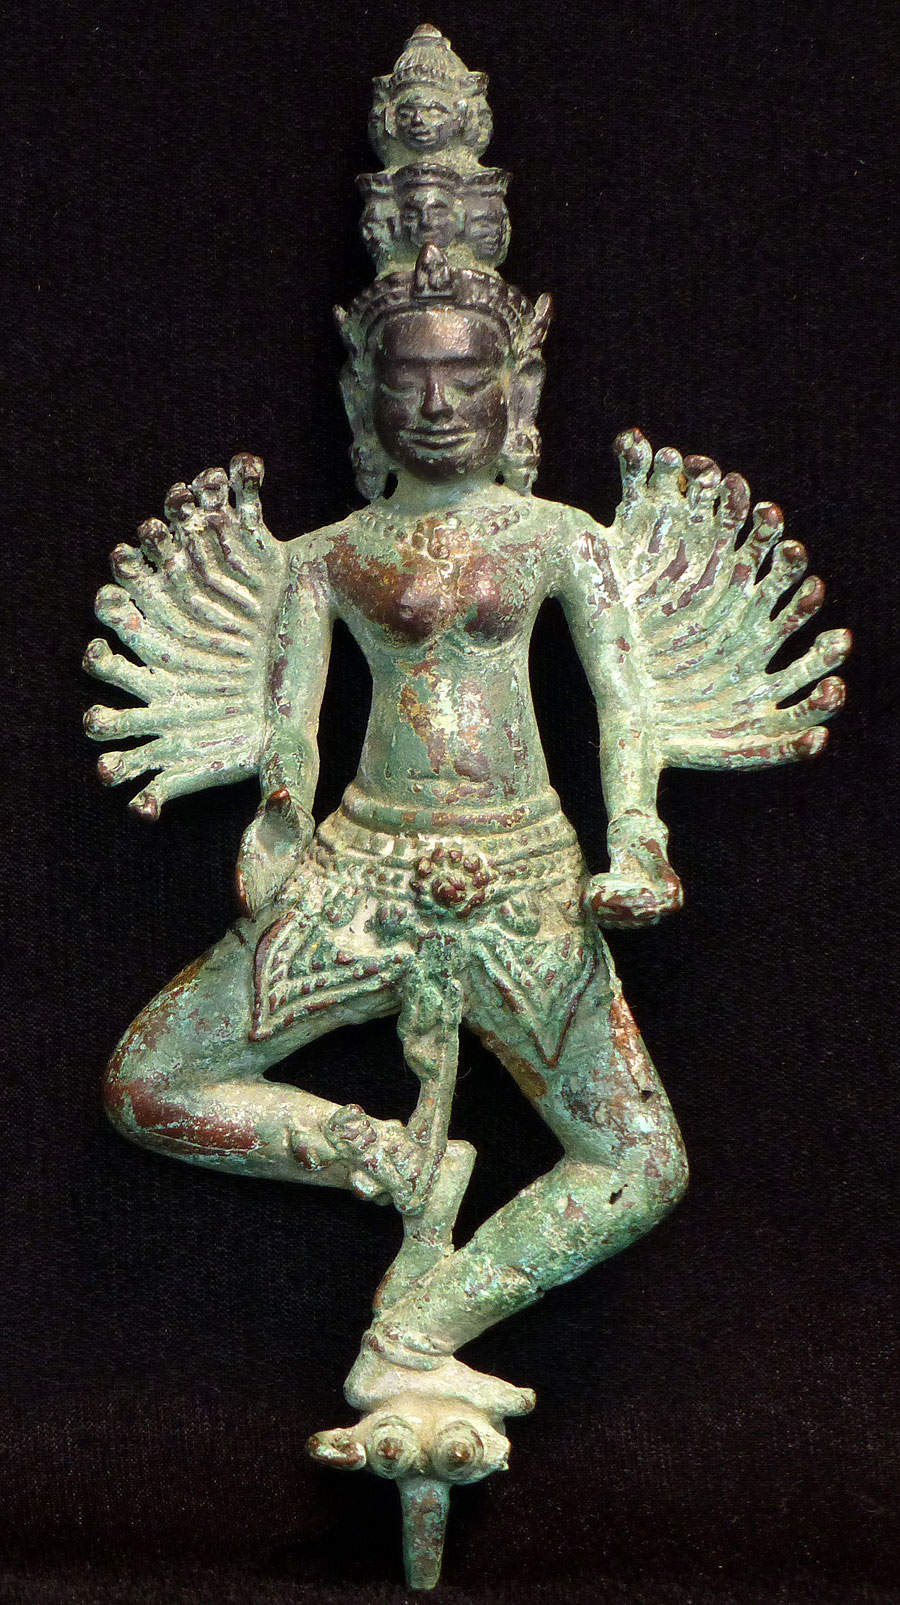 South East Asian Art and Antiquities For Sale - Edgar L